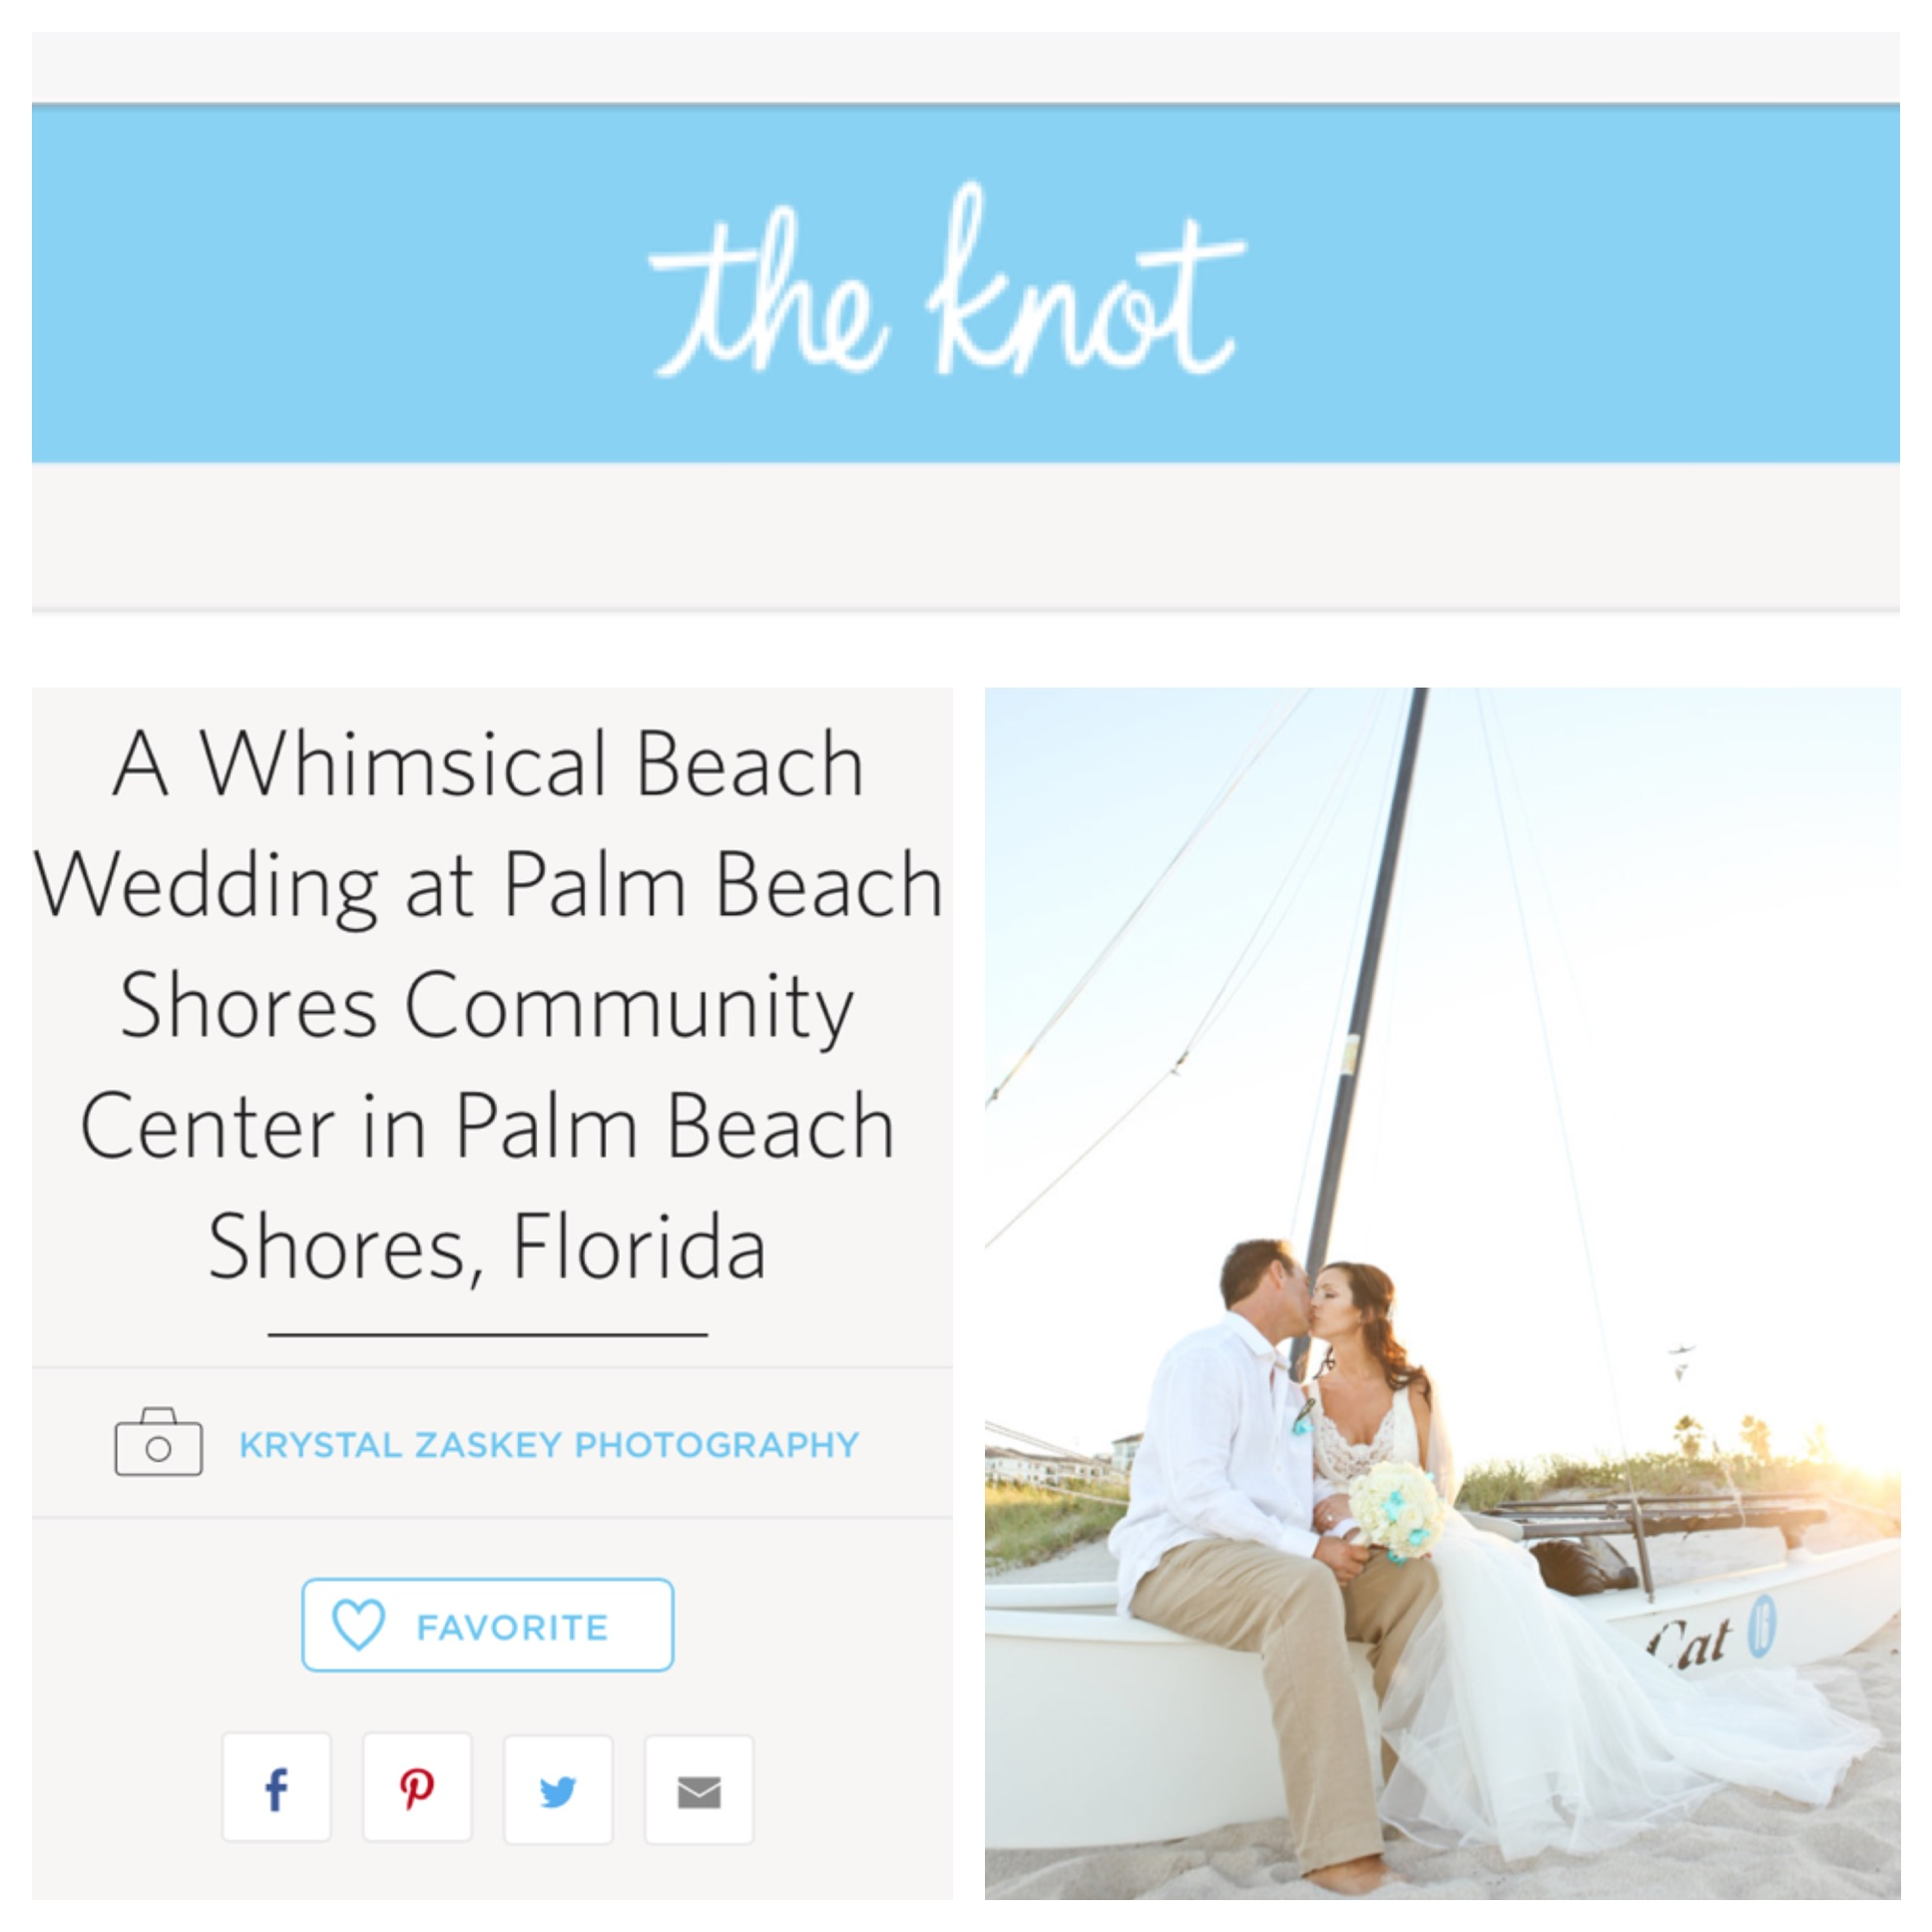 Whimsical and Elegant Beach Wedding on TheKnot | The Majestic Vision Wedding Planning | Palm Beach Shores in Palm Beach, FL | www.themajesticvision.com | Krystal Zaskey Photography